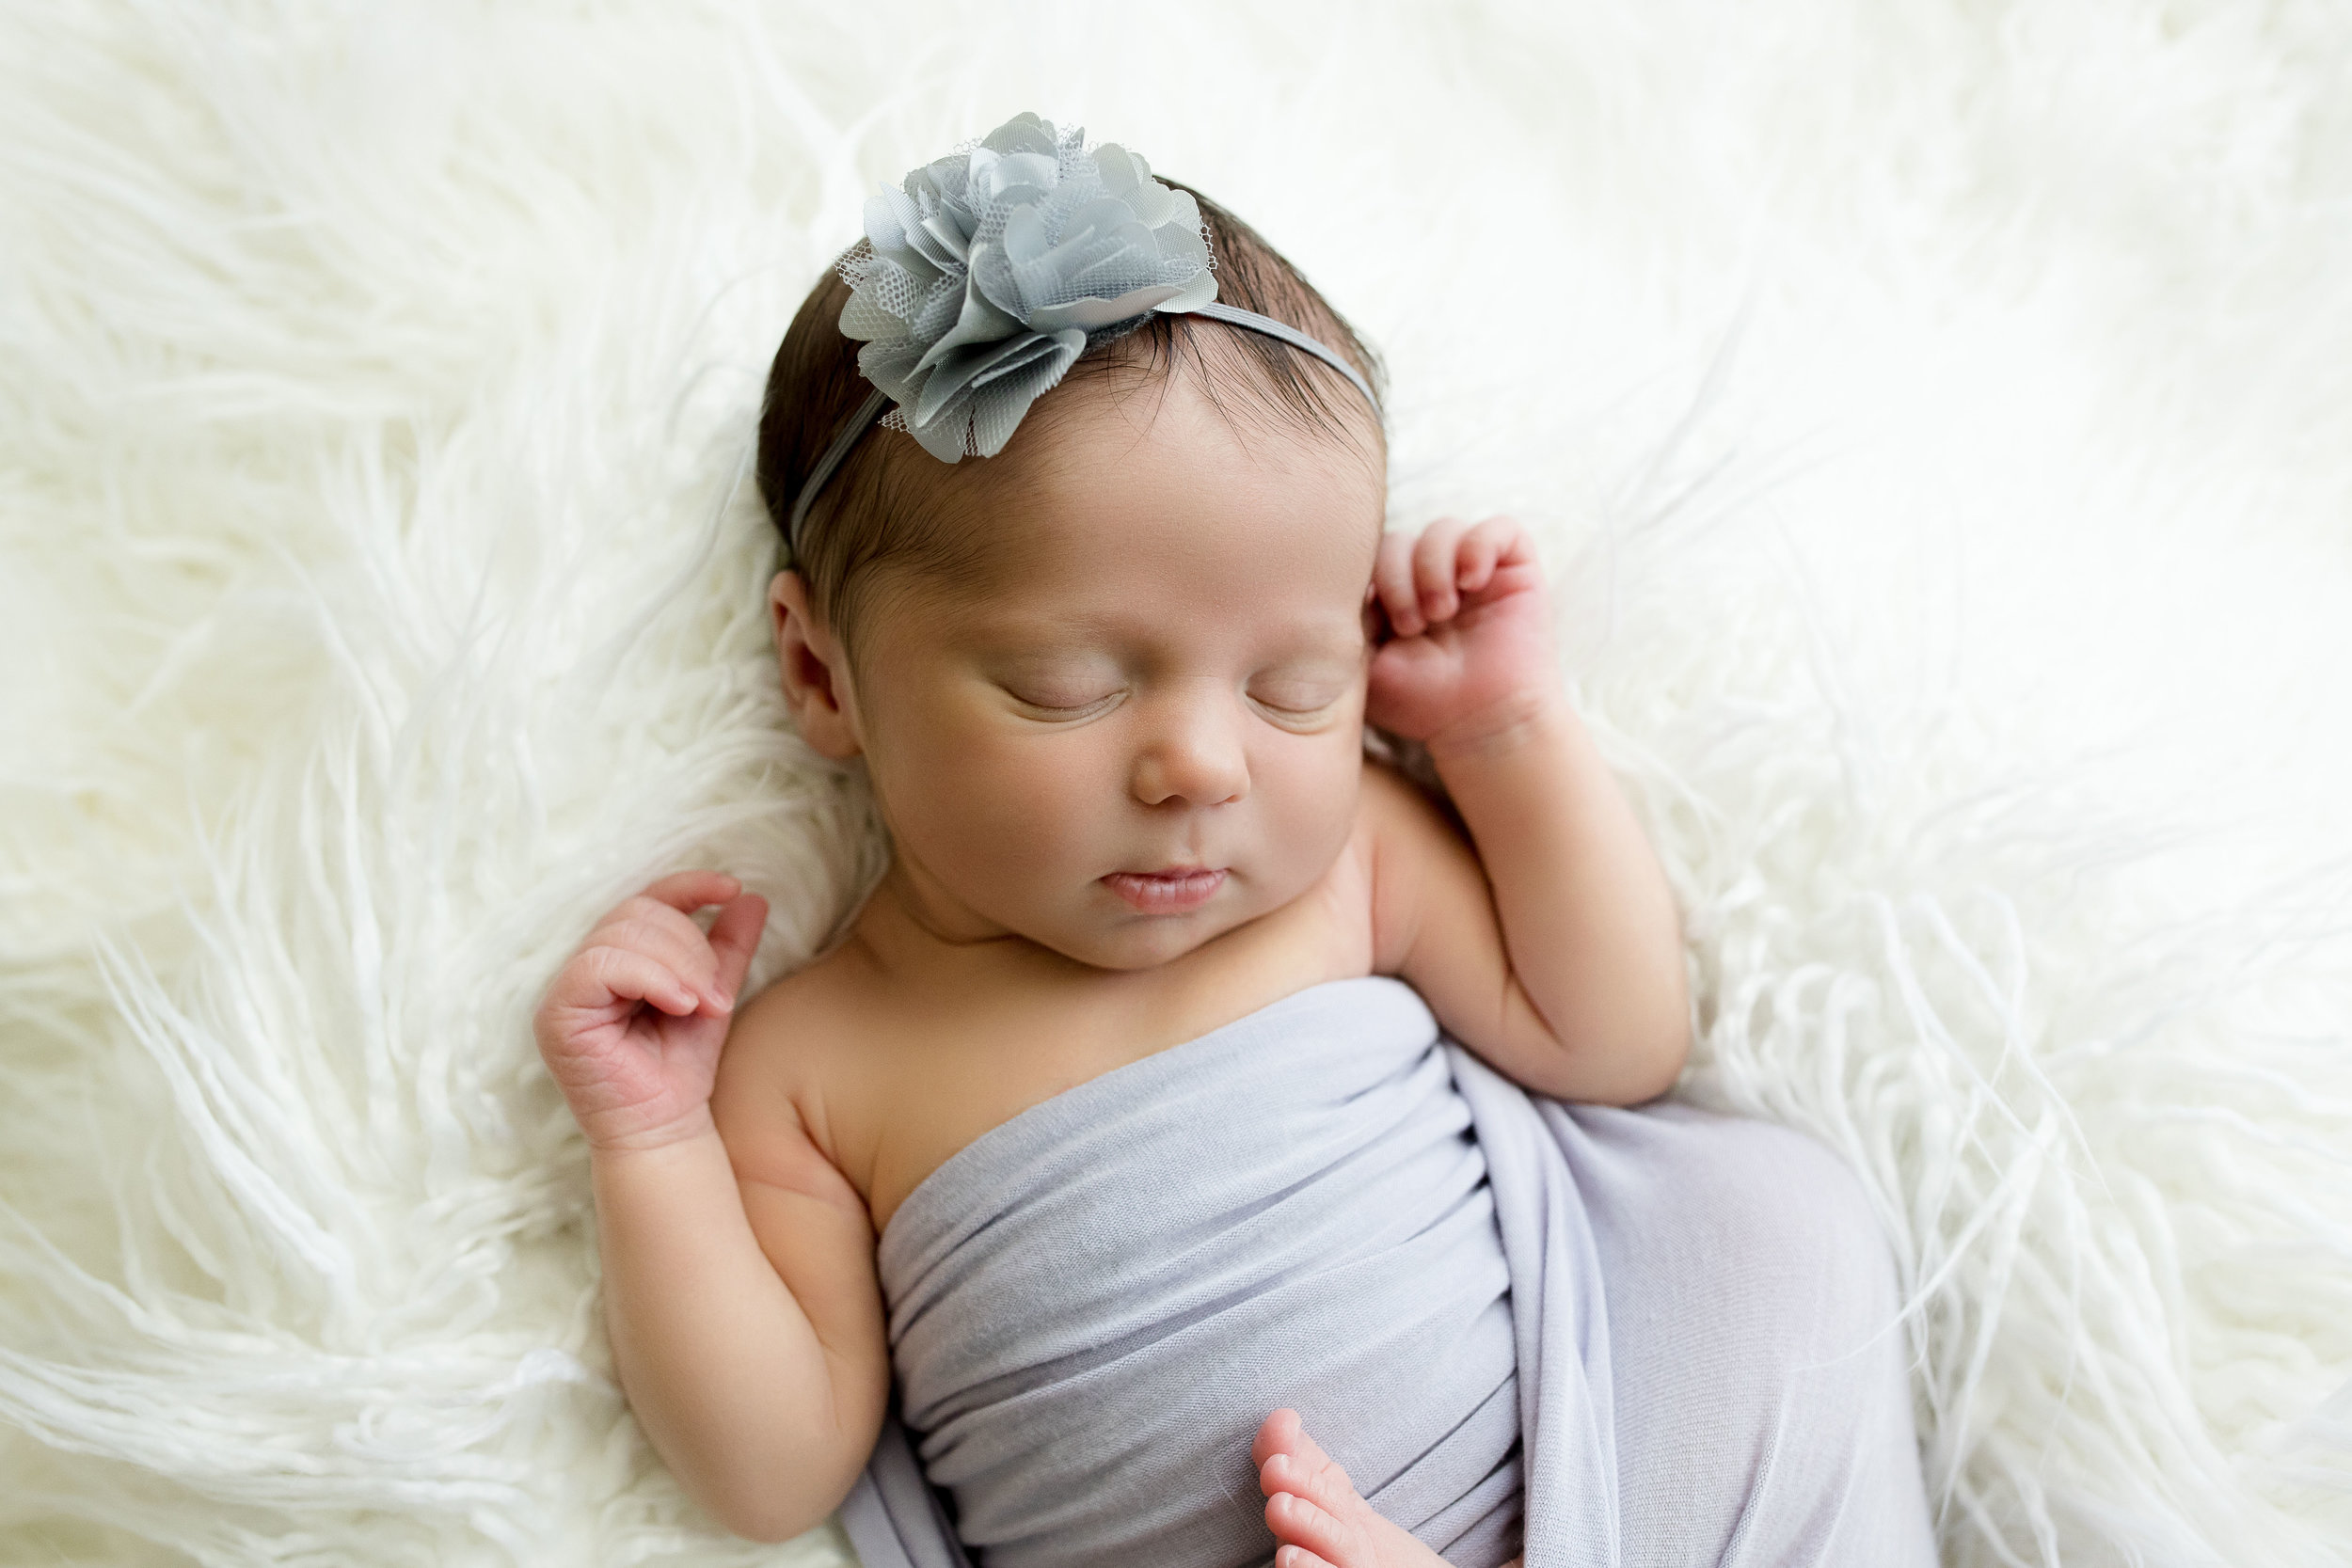 Six day old newborn girl sleeping in white fur with hands up during photo session in Cedar Rapids, Iowa.